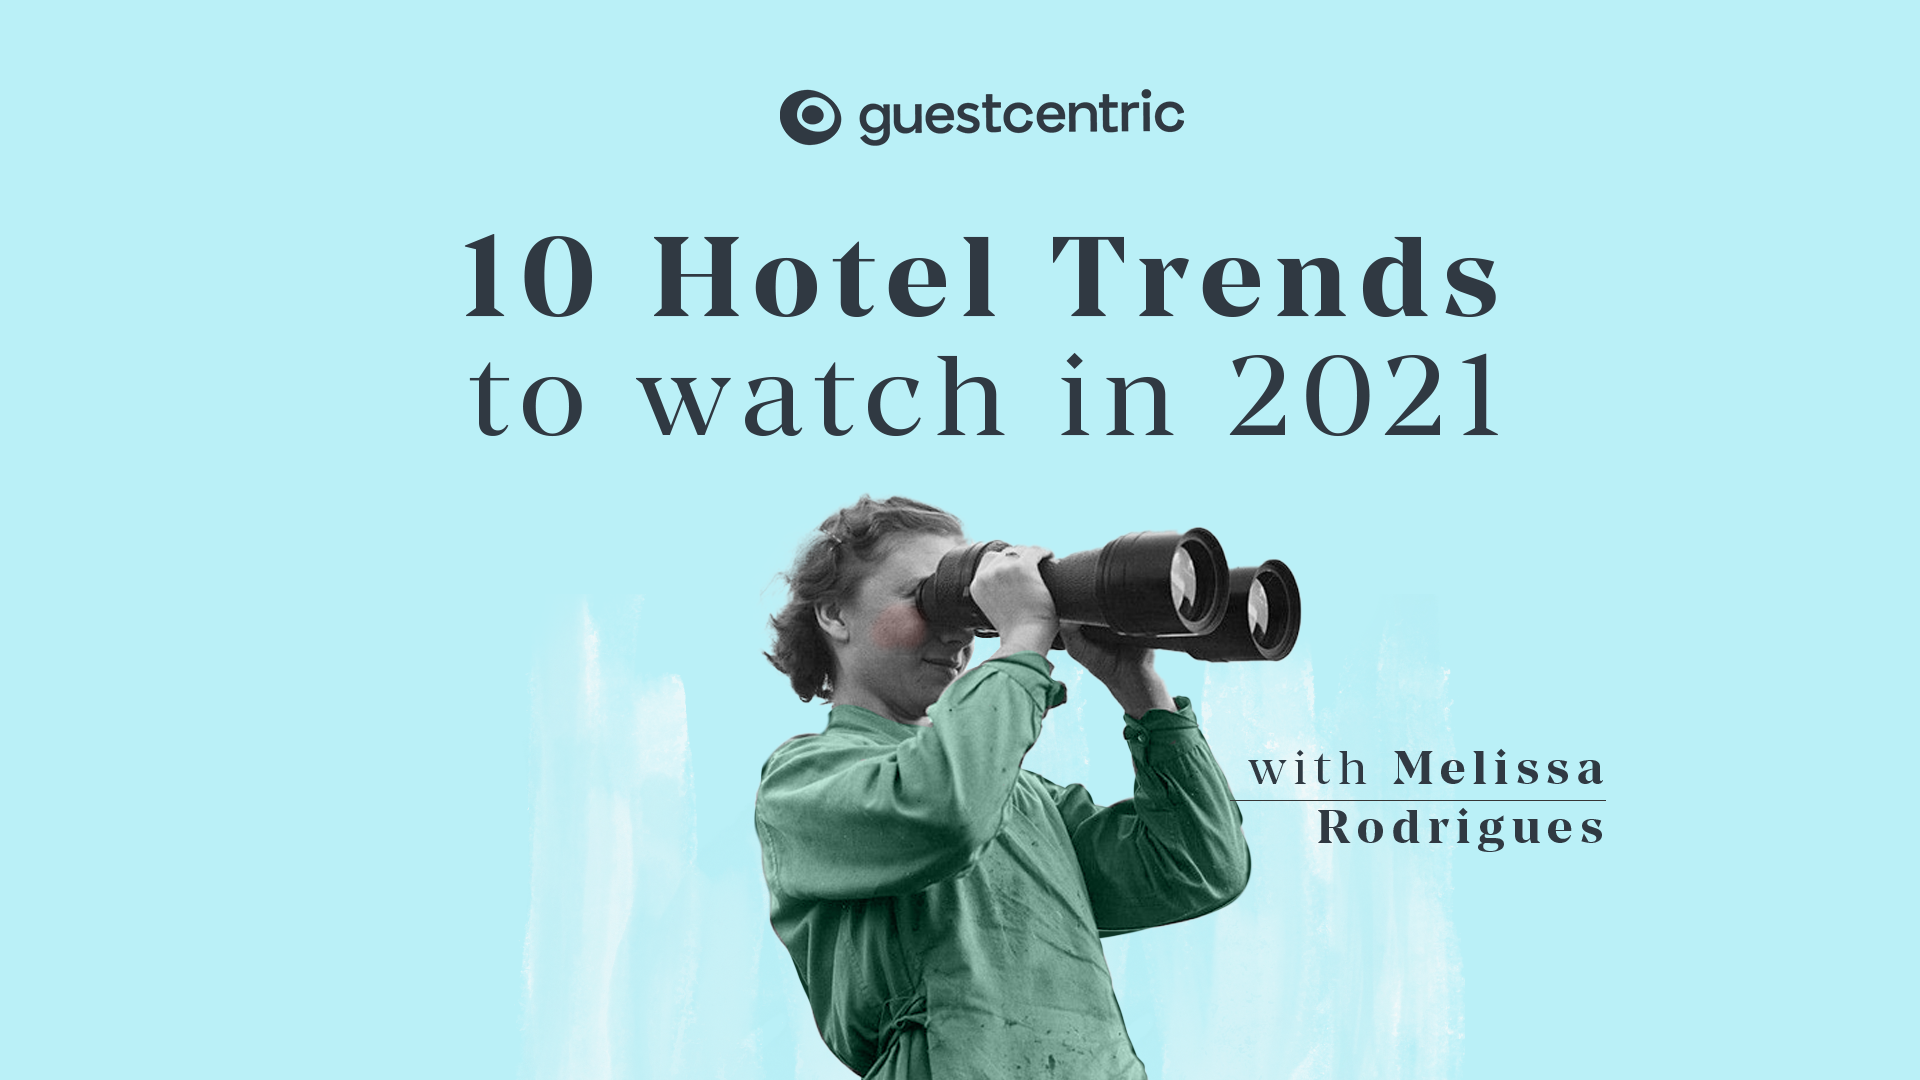 10 Hotel Trends to Watch in 2021